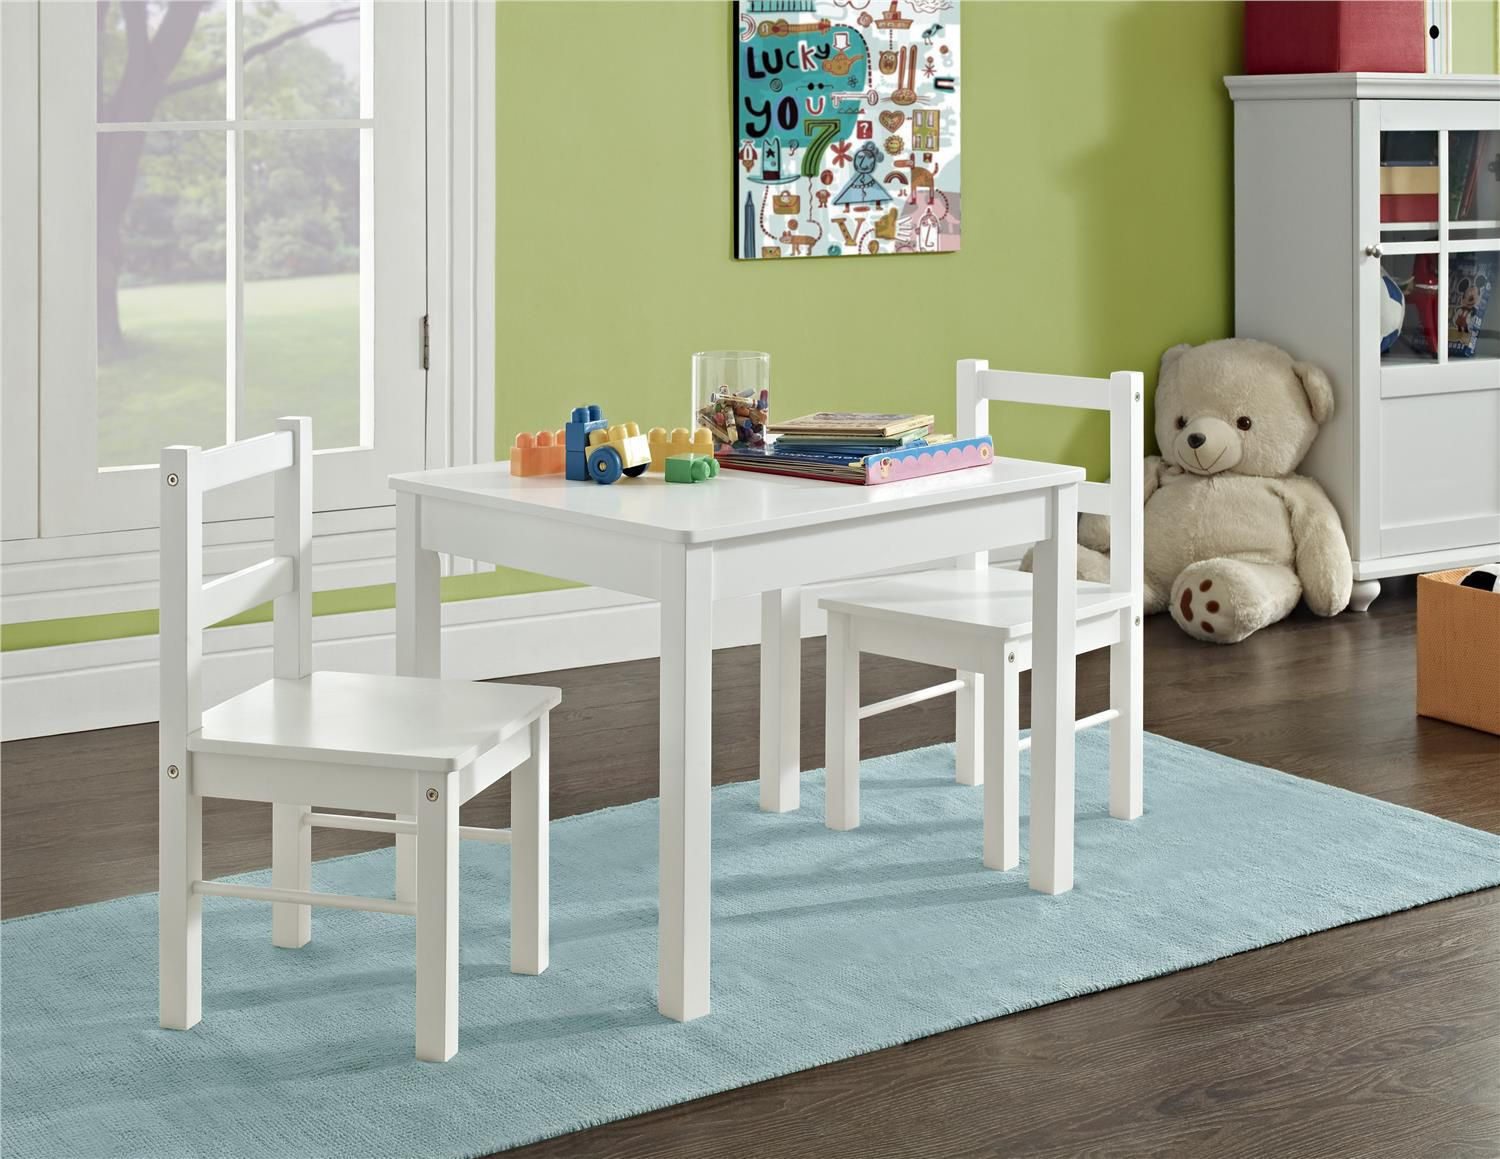 Dorel 3 Piece Kid S Wood Table And Chair Set Walmart Canada